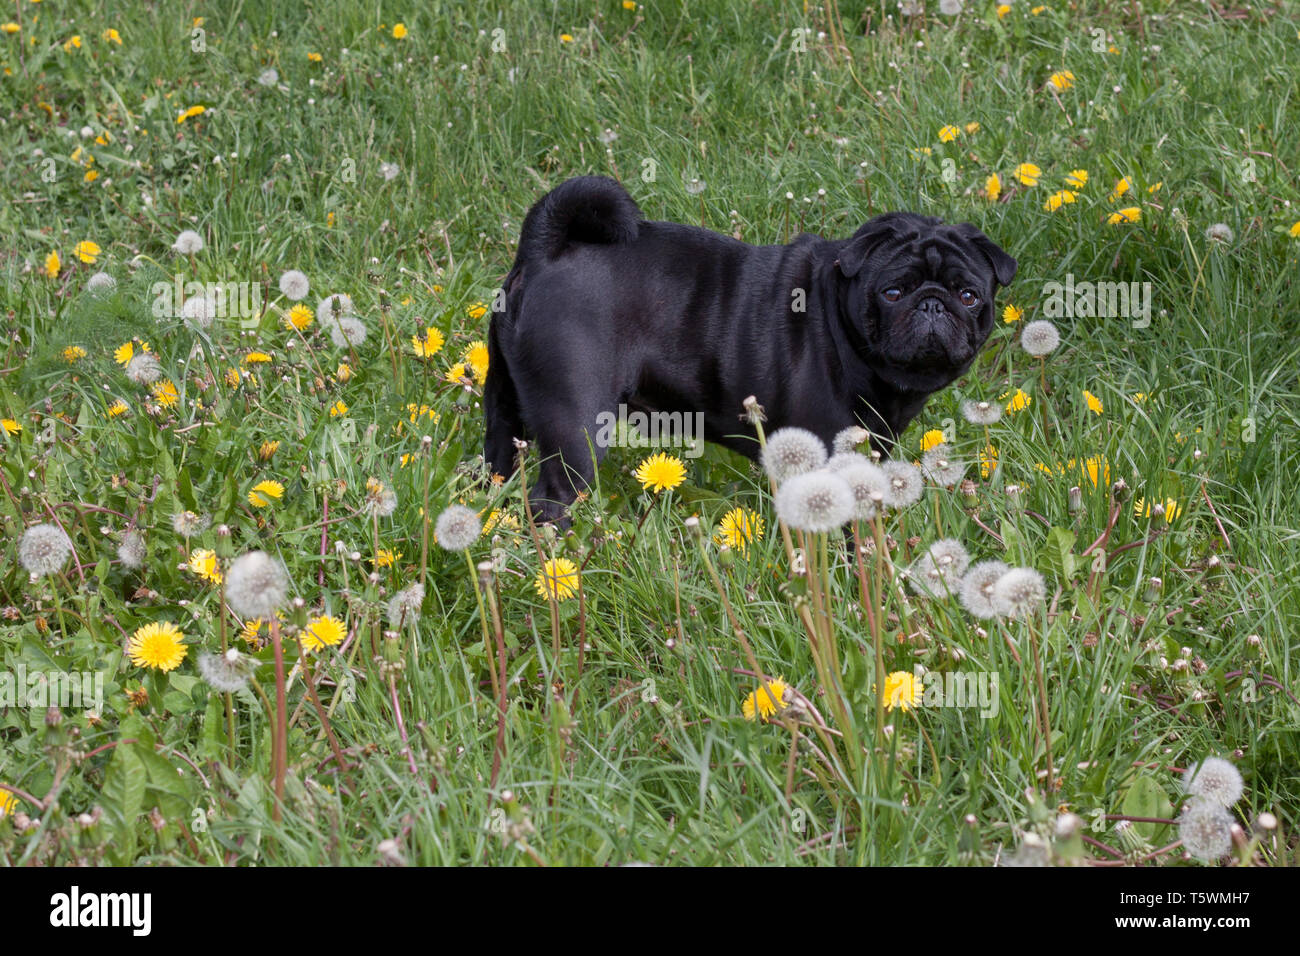 Chinese pug is walking on a blooming meadow. Dutch mastiff or mops. Pet animals. - Stock Image